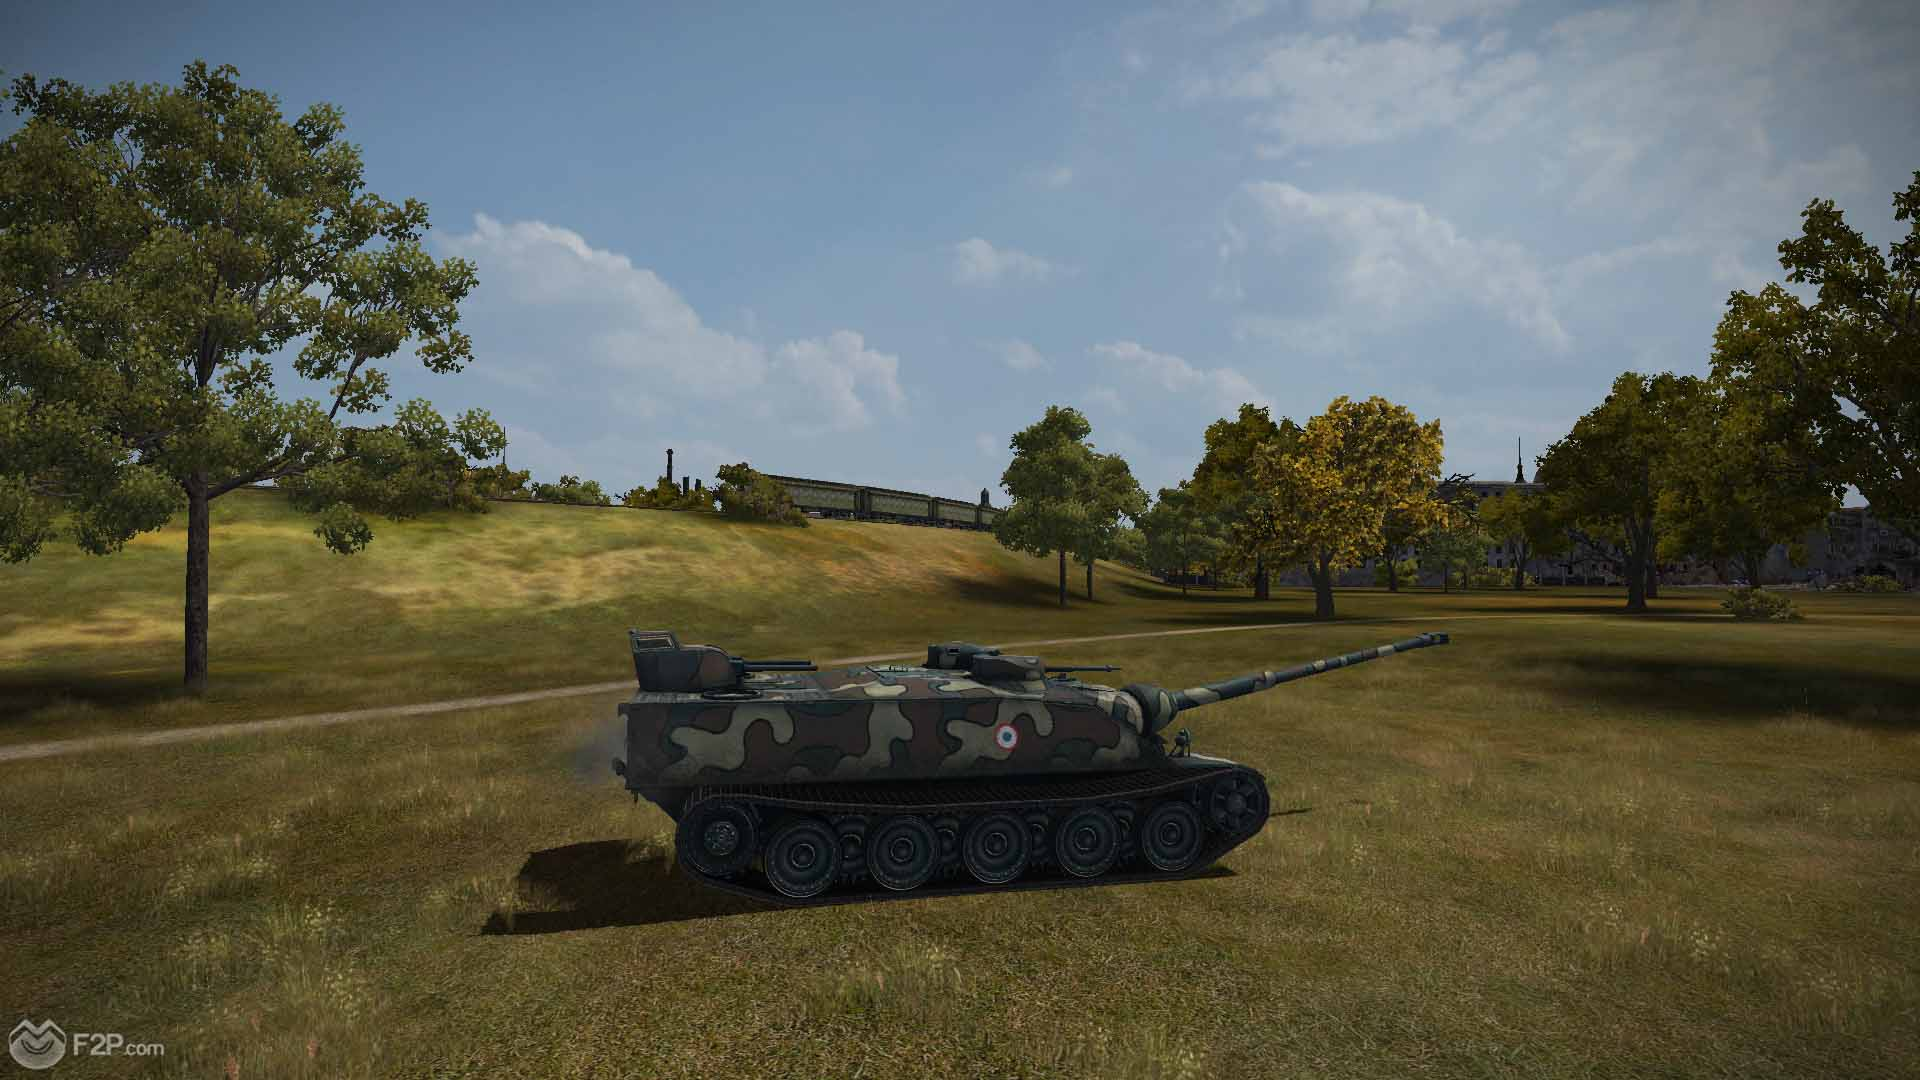 Click image for larger version. Name:	WorldOfTanks_consumer 2012-05-23 13-44-30-06 copia_1.jpg Views:	118 Size:	157.7 KB ID:	15128